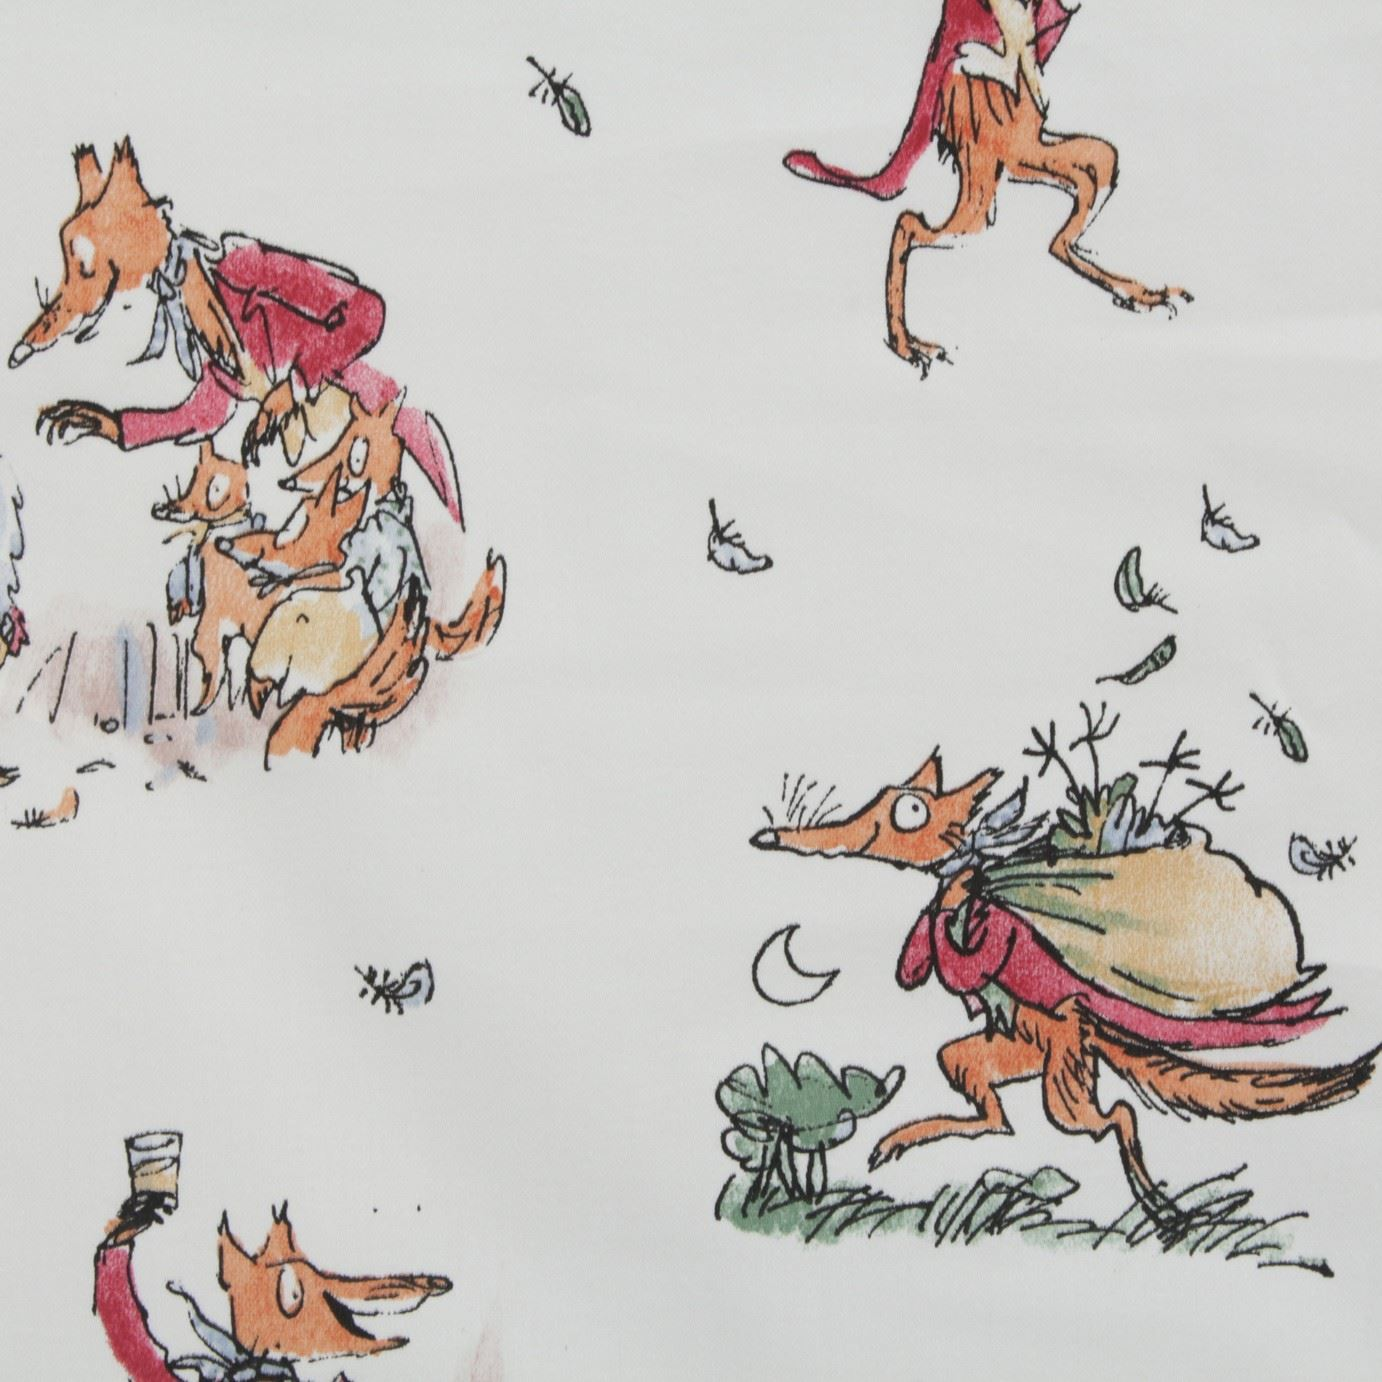 Roald Dahl Quentin Blake Art Story Quilting Curtain Craft